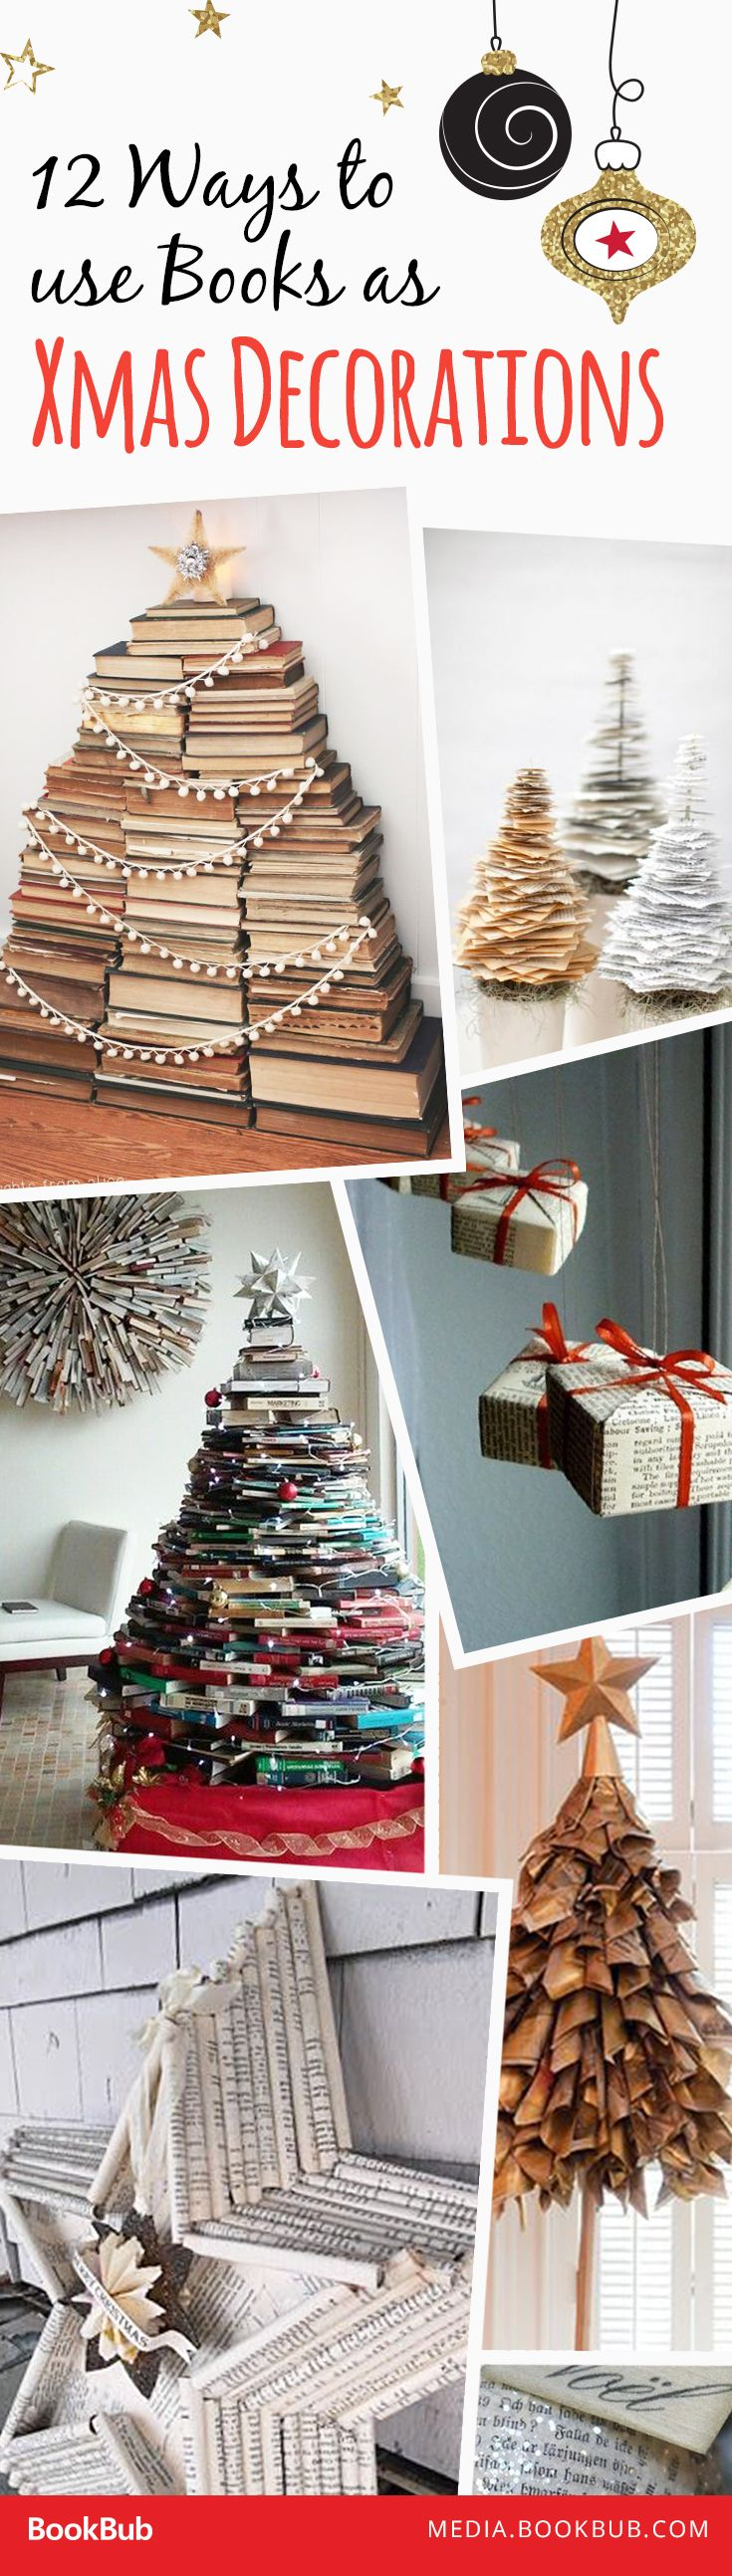 12 Charming Ways To Use Books As Holiday Decorations Holiday Cheer Holiday Holiday Decor